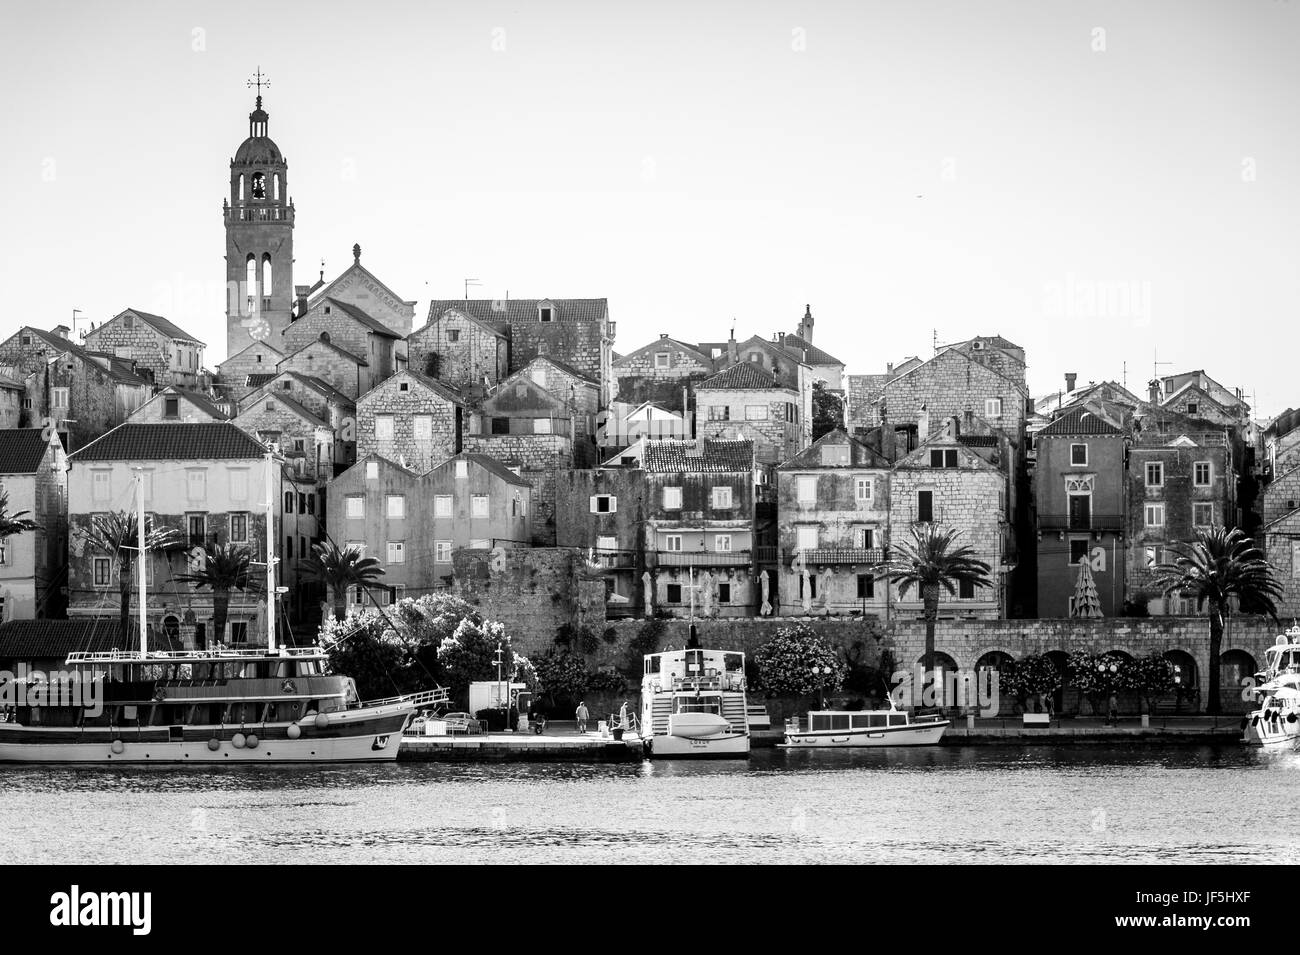 Korcula in Croatia - Stock Image